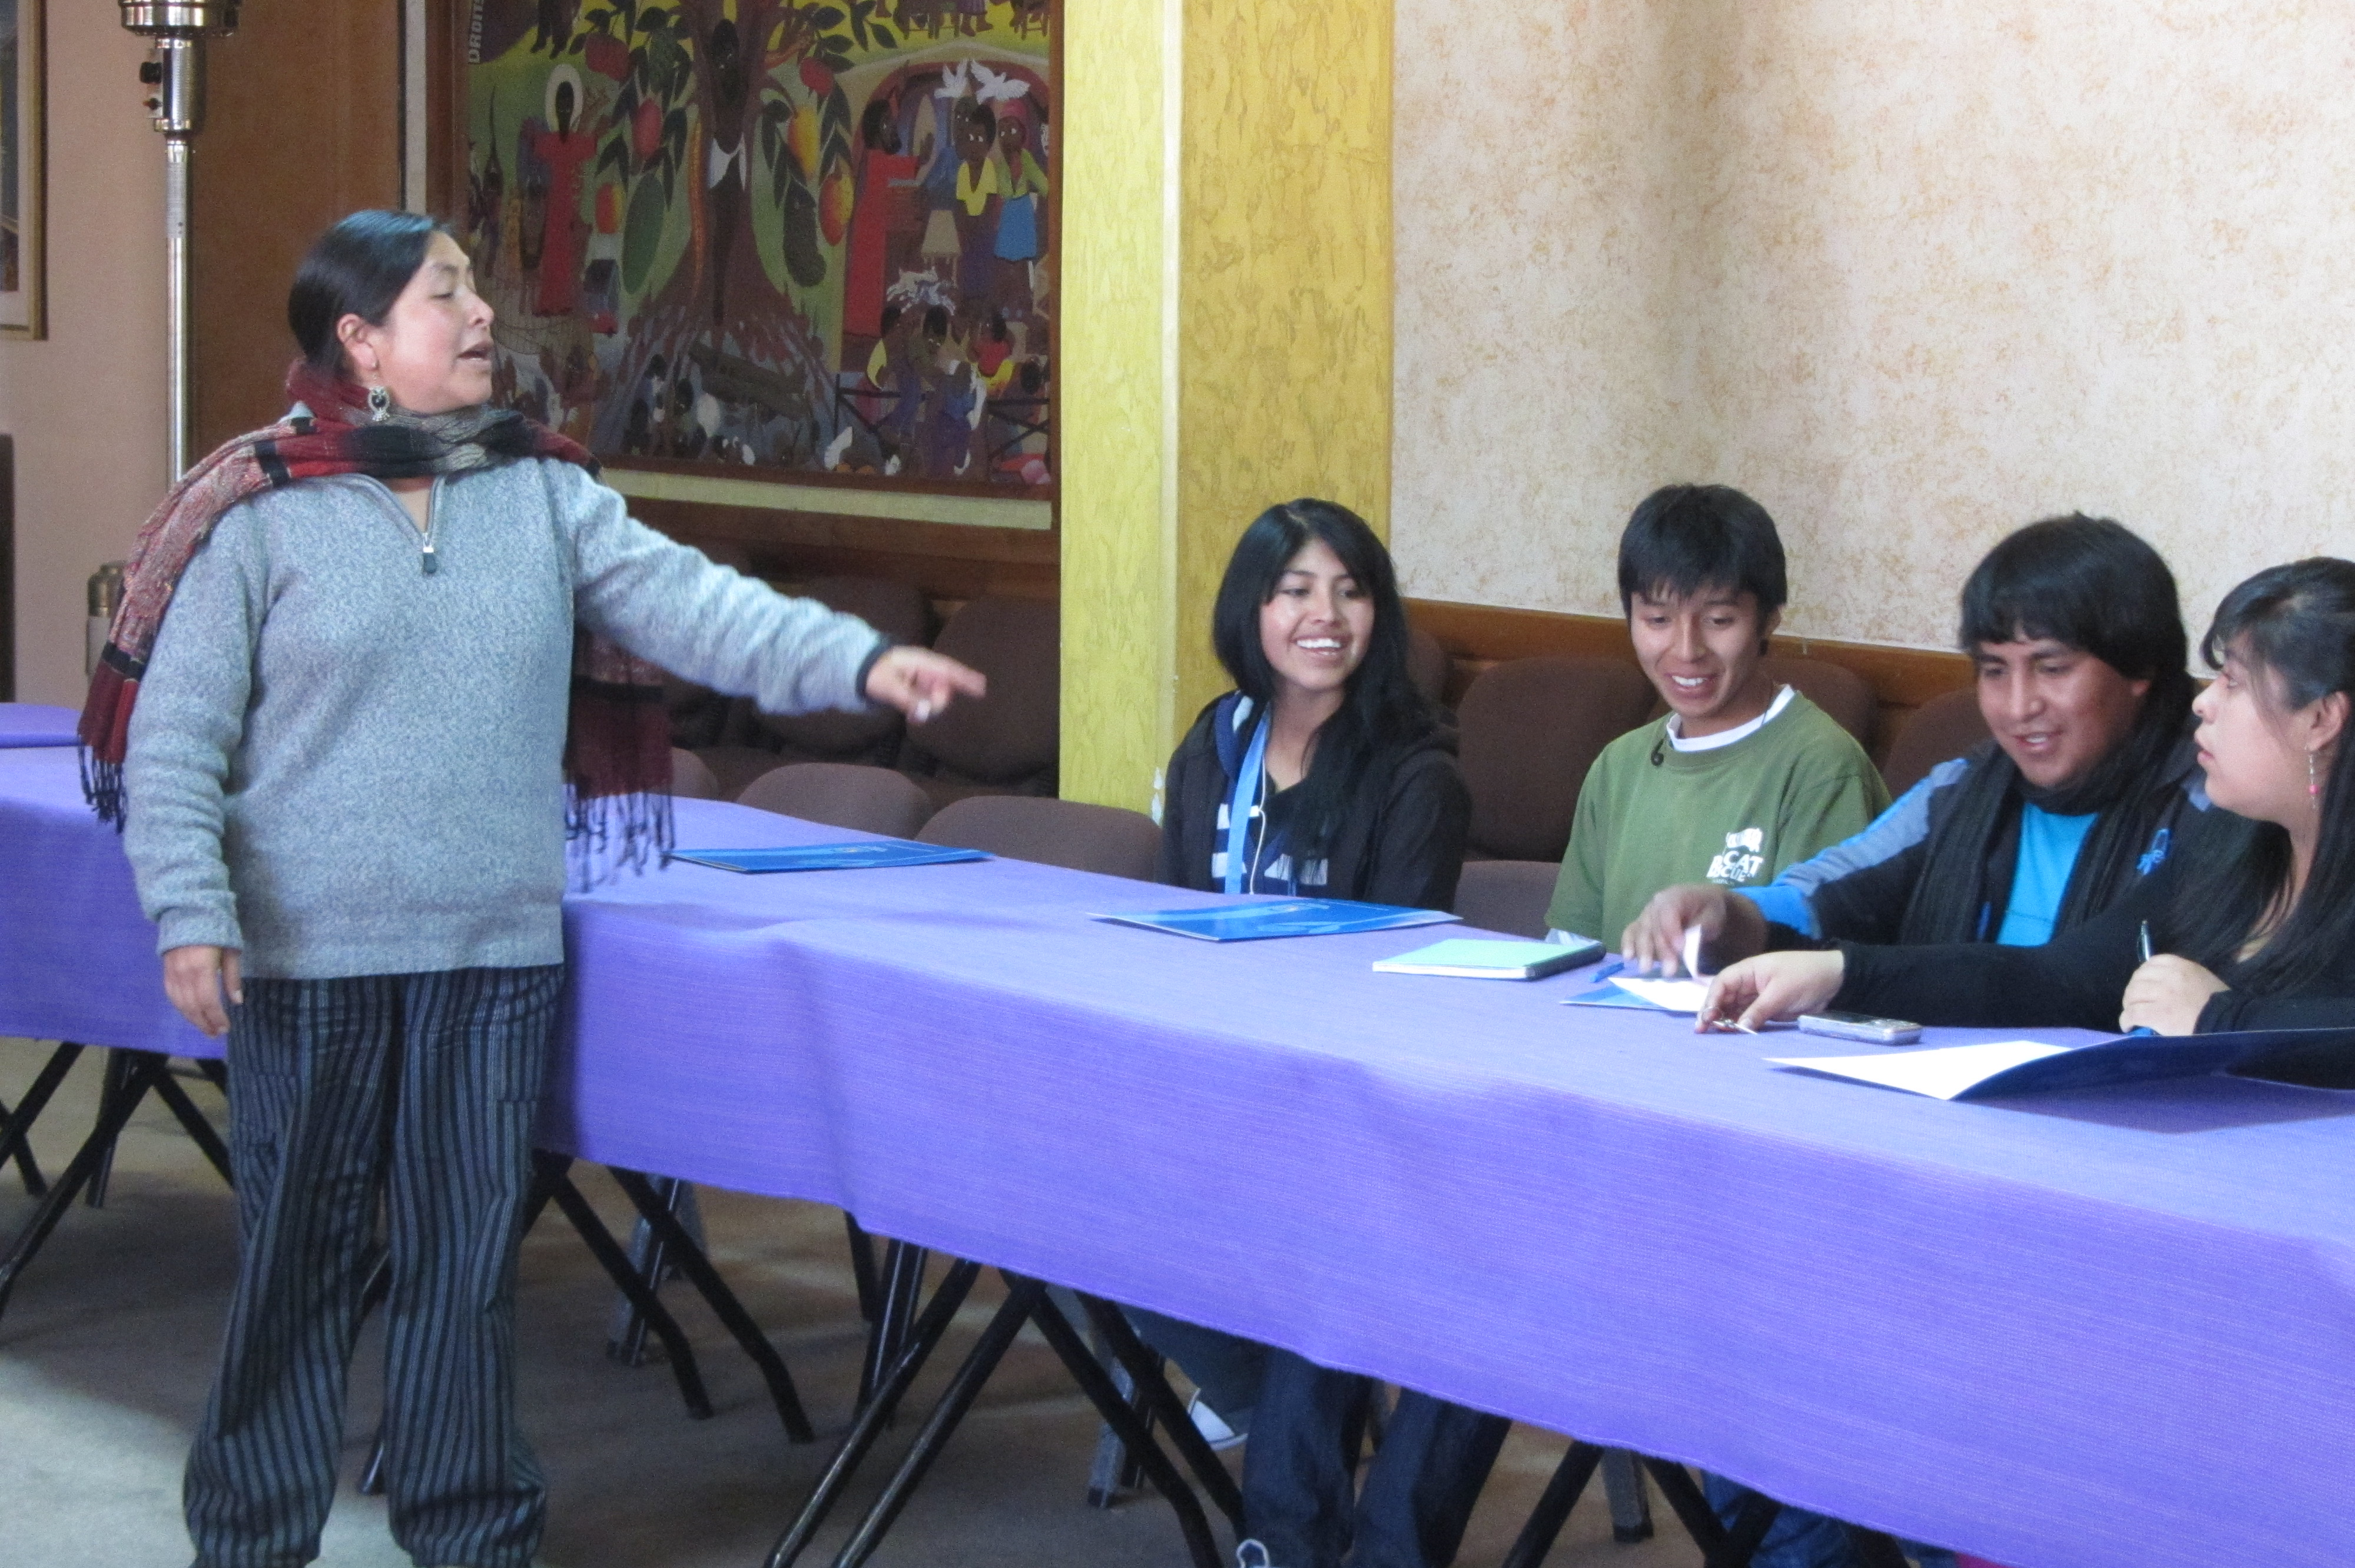 Ely Lopez carrying out a workshop for youth on water rights (La Paz, Bolivia).